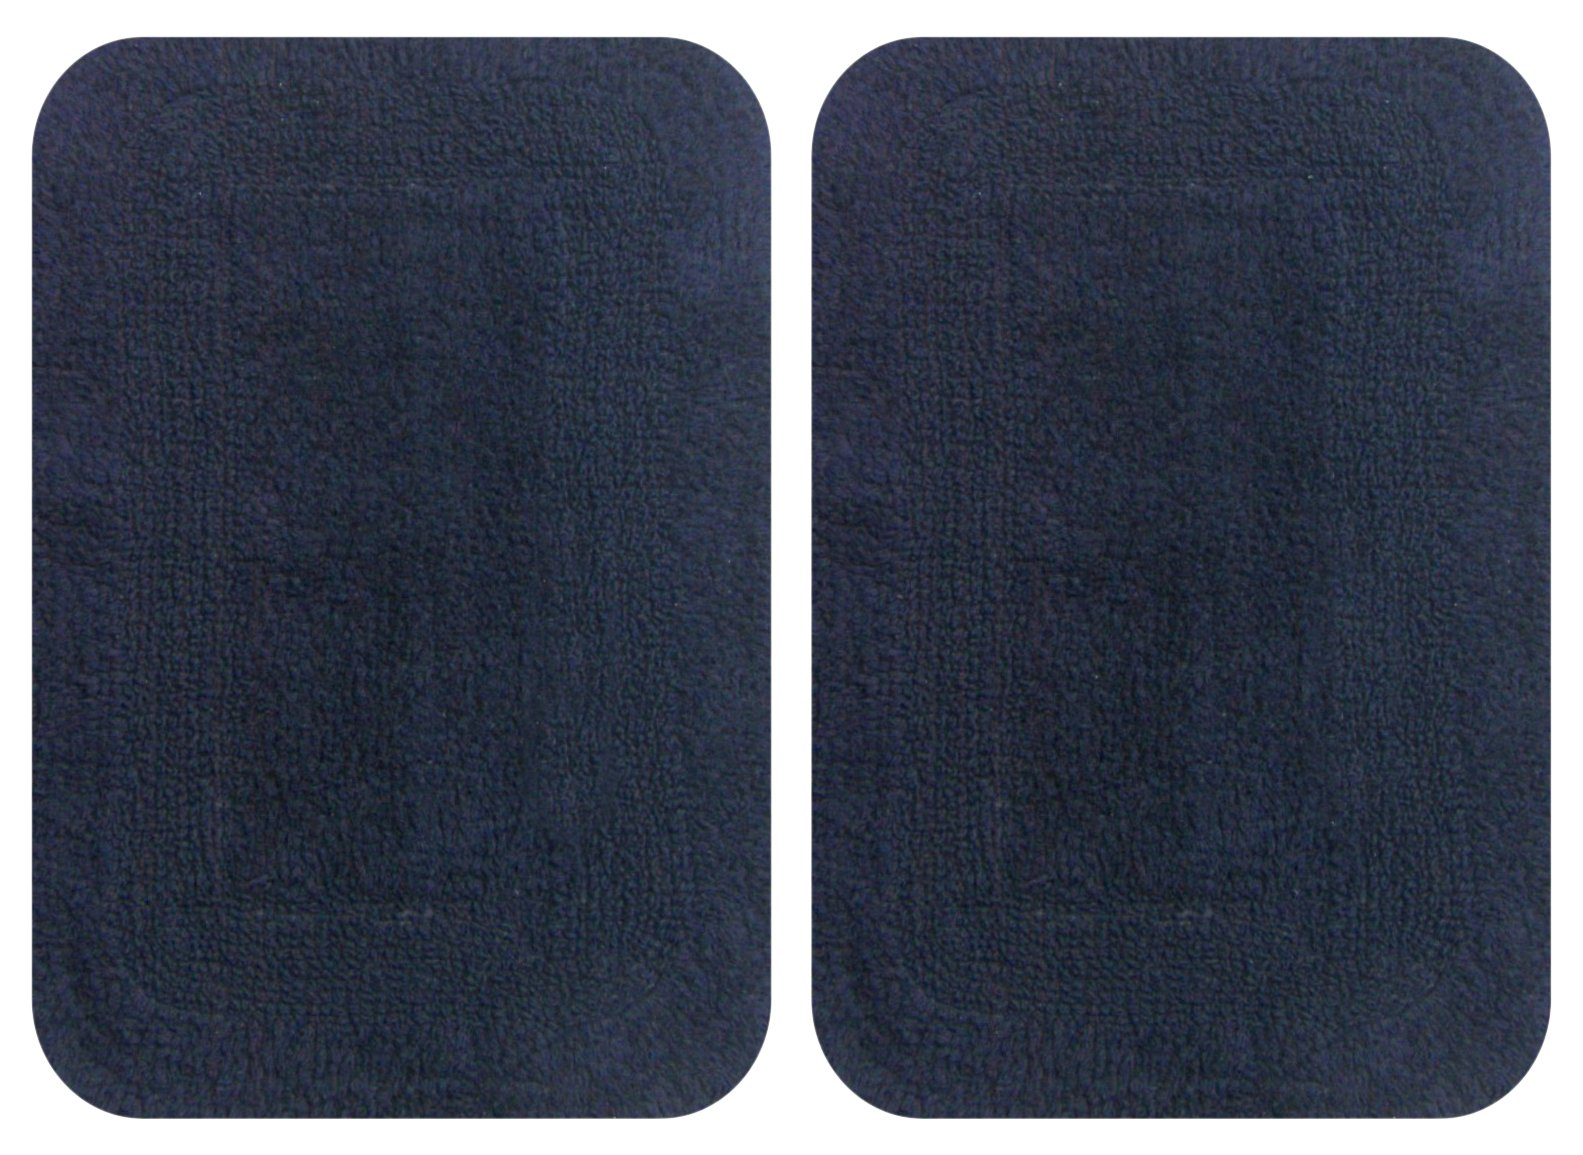 "Chardin Home 2 Piece Reversible Step Mat Set (17"" x 24"" & 17''x24''), Navy - Made with finest super soft cotton Wash separately in cold water, gentle cycle with mild detergent Add an accent of color to your bathroom décor with these stylish bath rugs - bathroom-linens, bathroom, bath-mats - 81HYLaq8muL -"